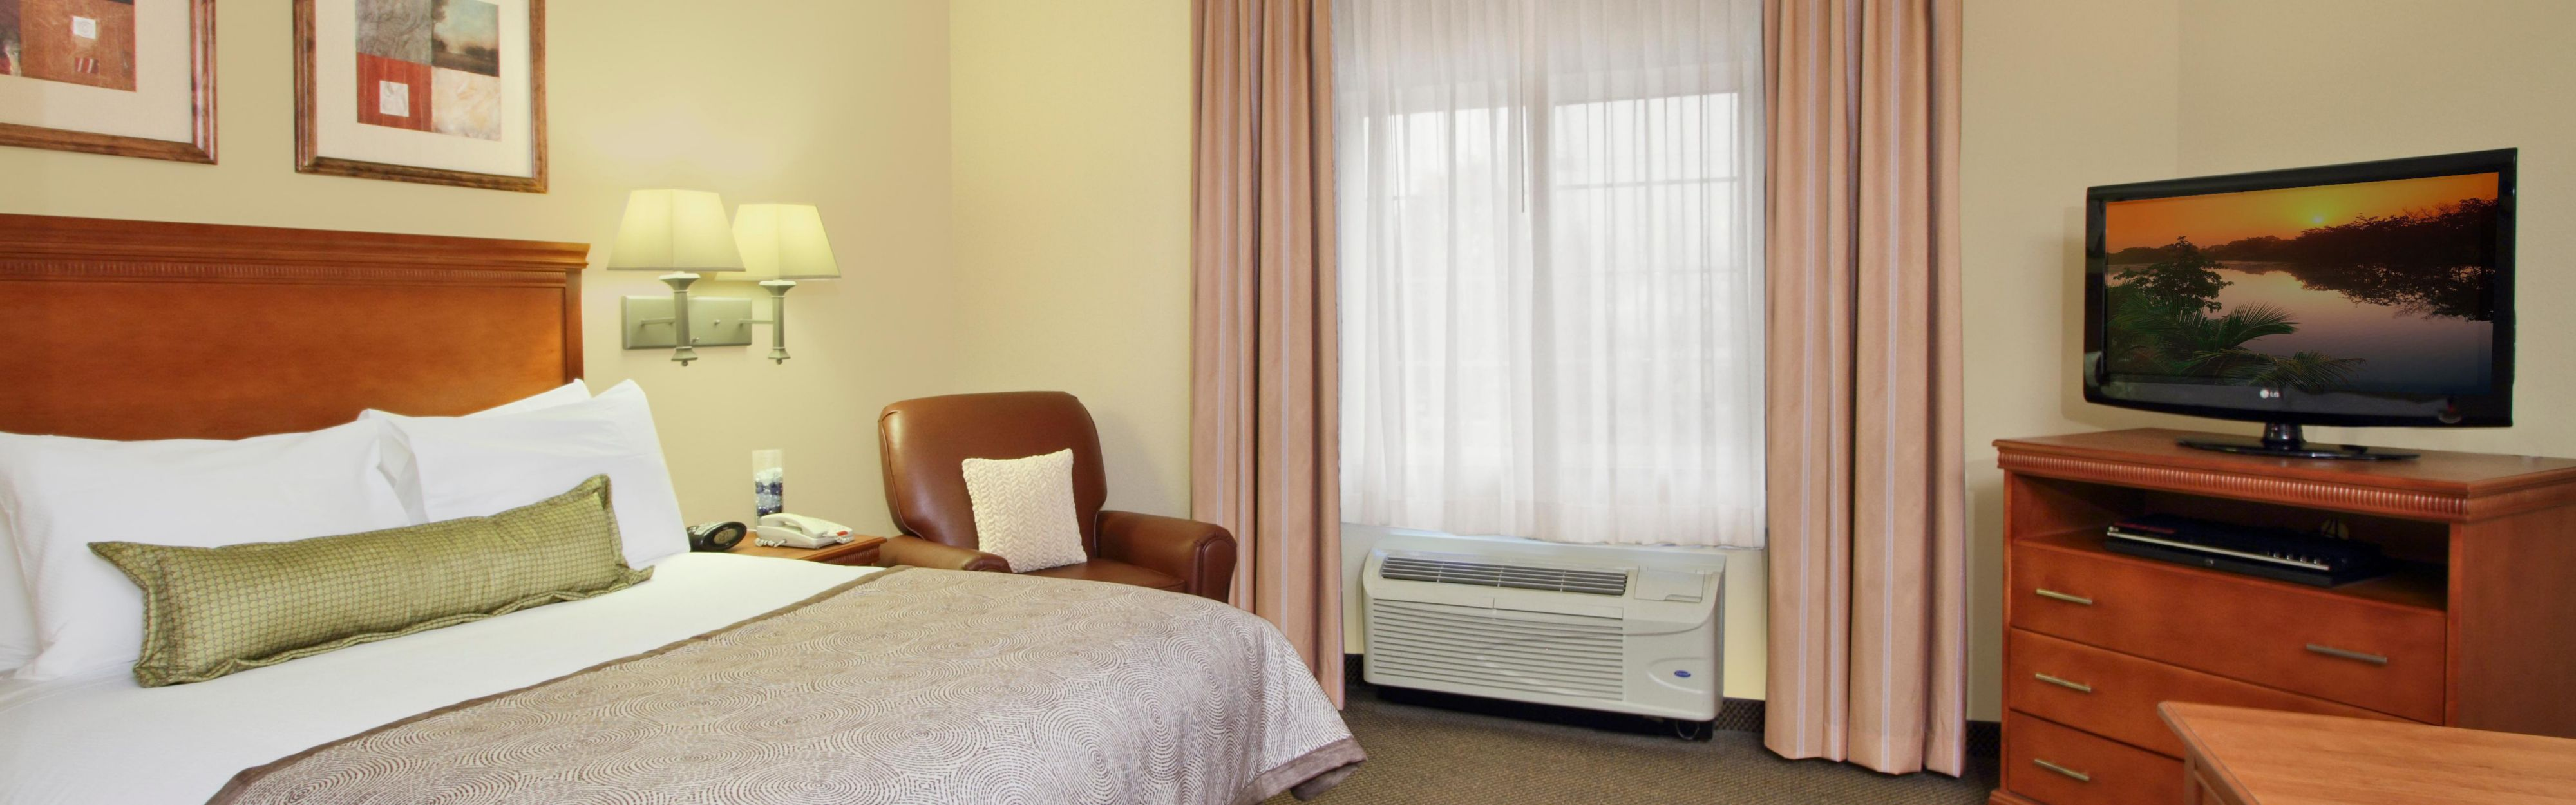 Candlewood Suites Norfolk Airport image 1